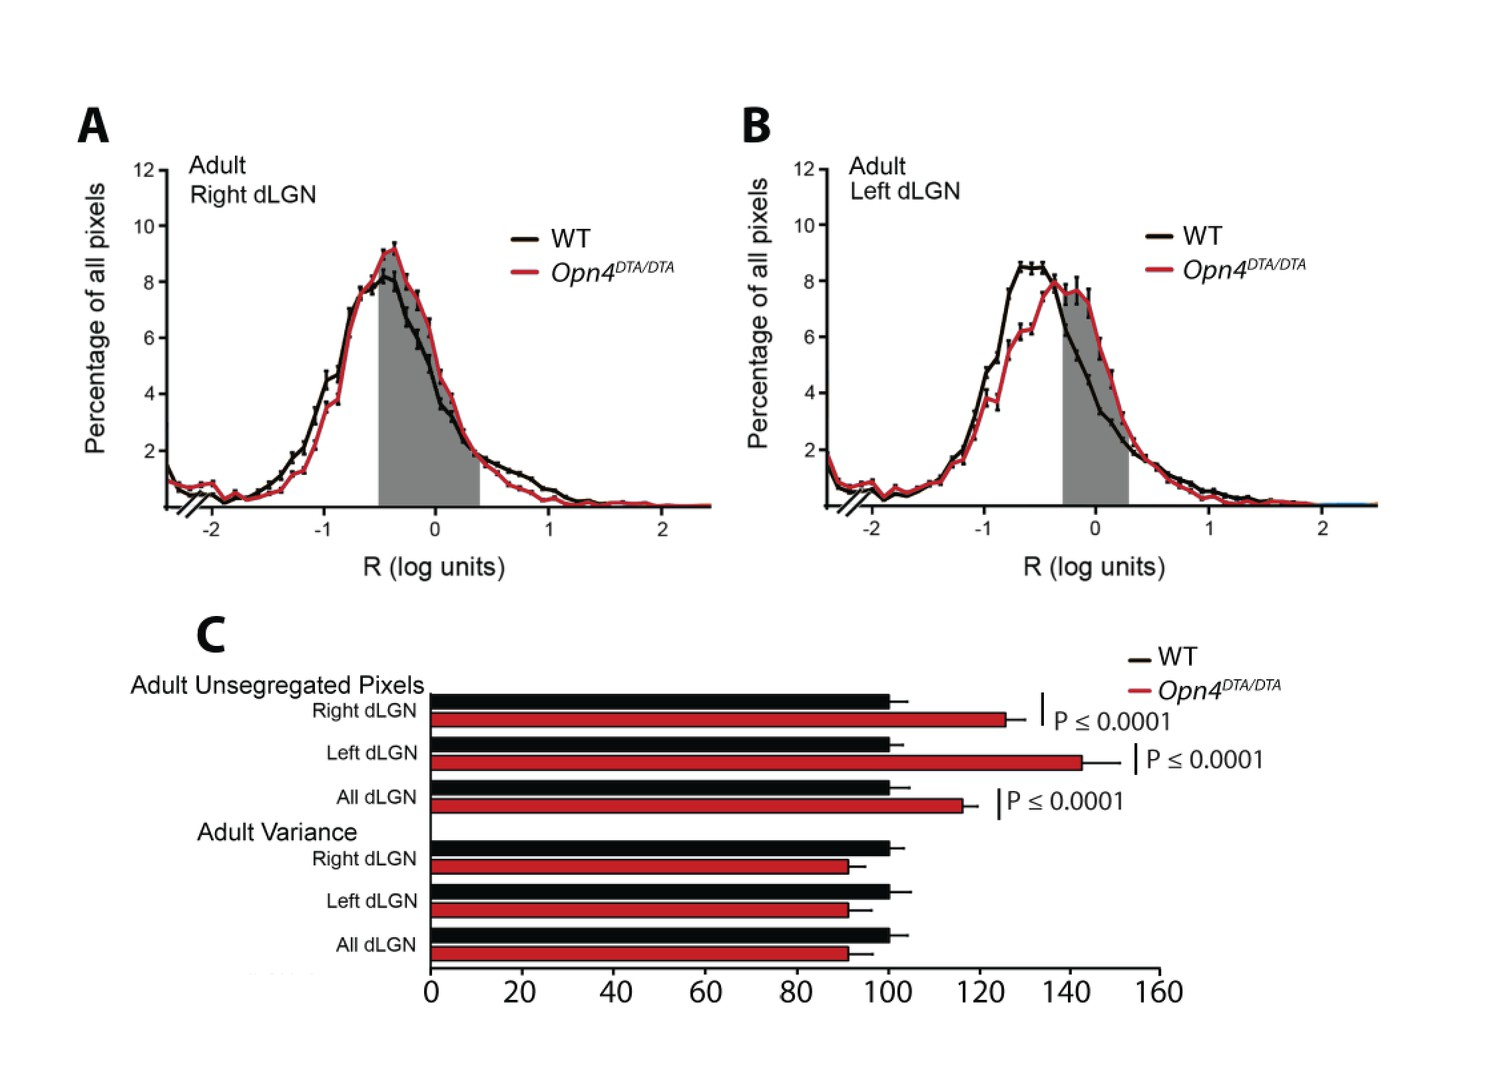 A Subset Of Iprgcs Regulates Both Maturation The Circadian Clock 46 Kb Jpeg Panel Schematic Wiring Diagrams Single Line Block Quantification Disruption In Eye Specific Axonal Segregation Dlgn Adult Opn4dta Dta Mice